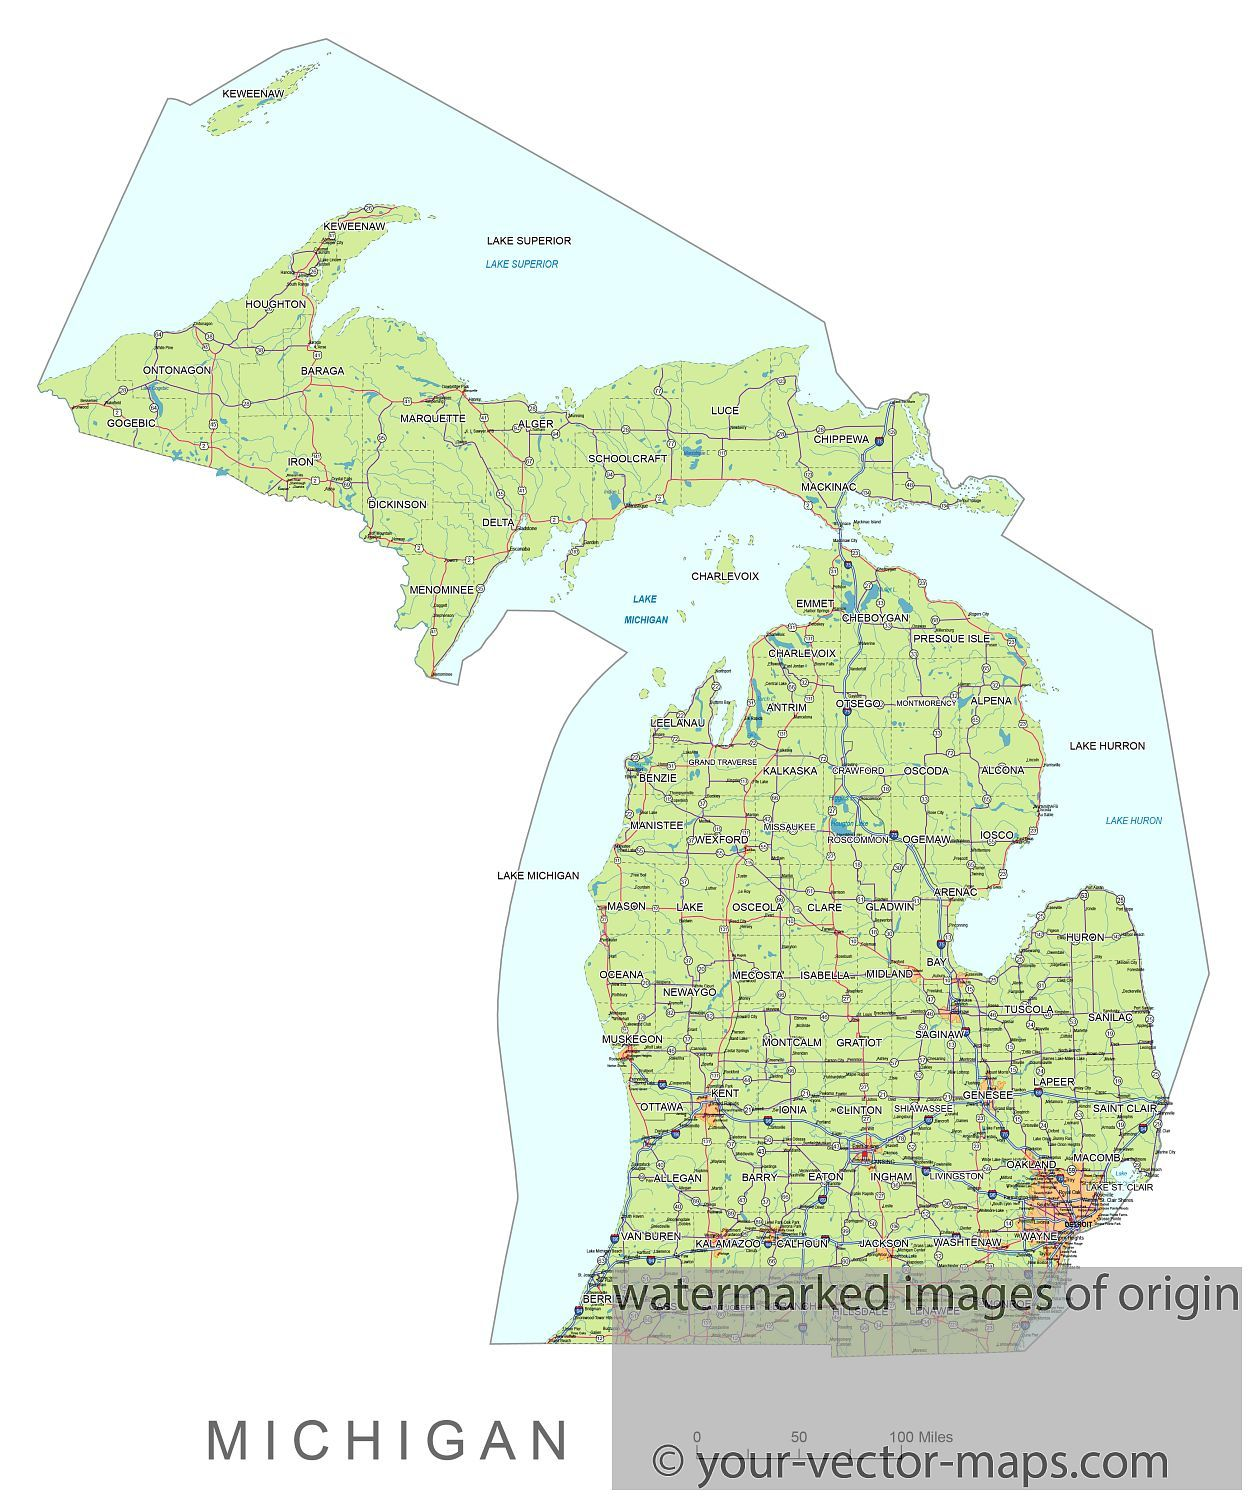 Michigan state route network map. Michigan highways map. Cities of ...